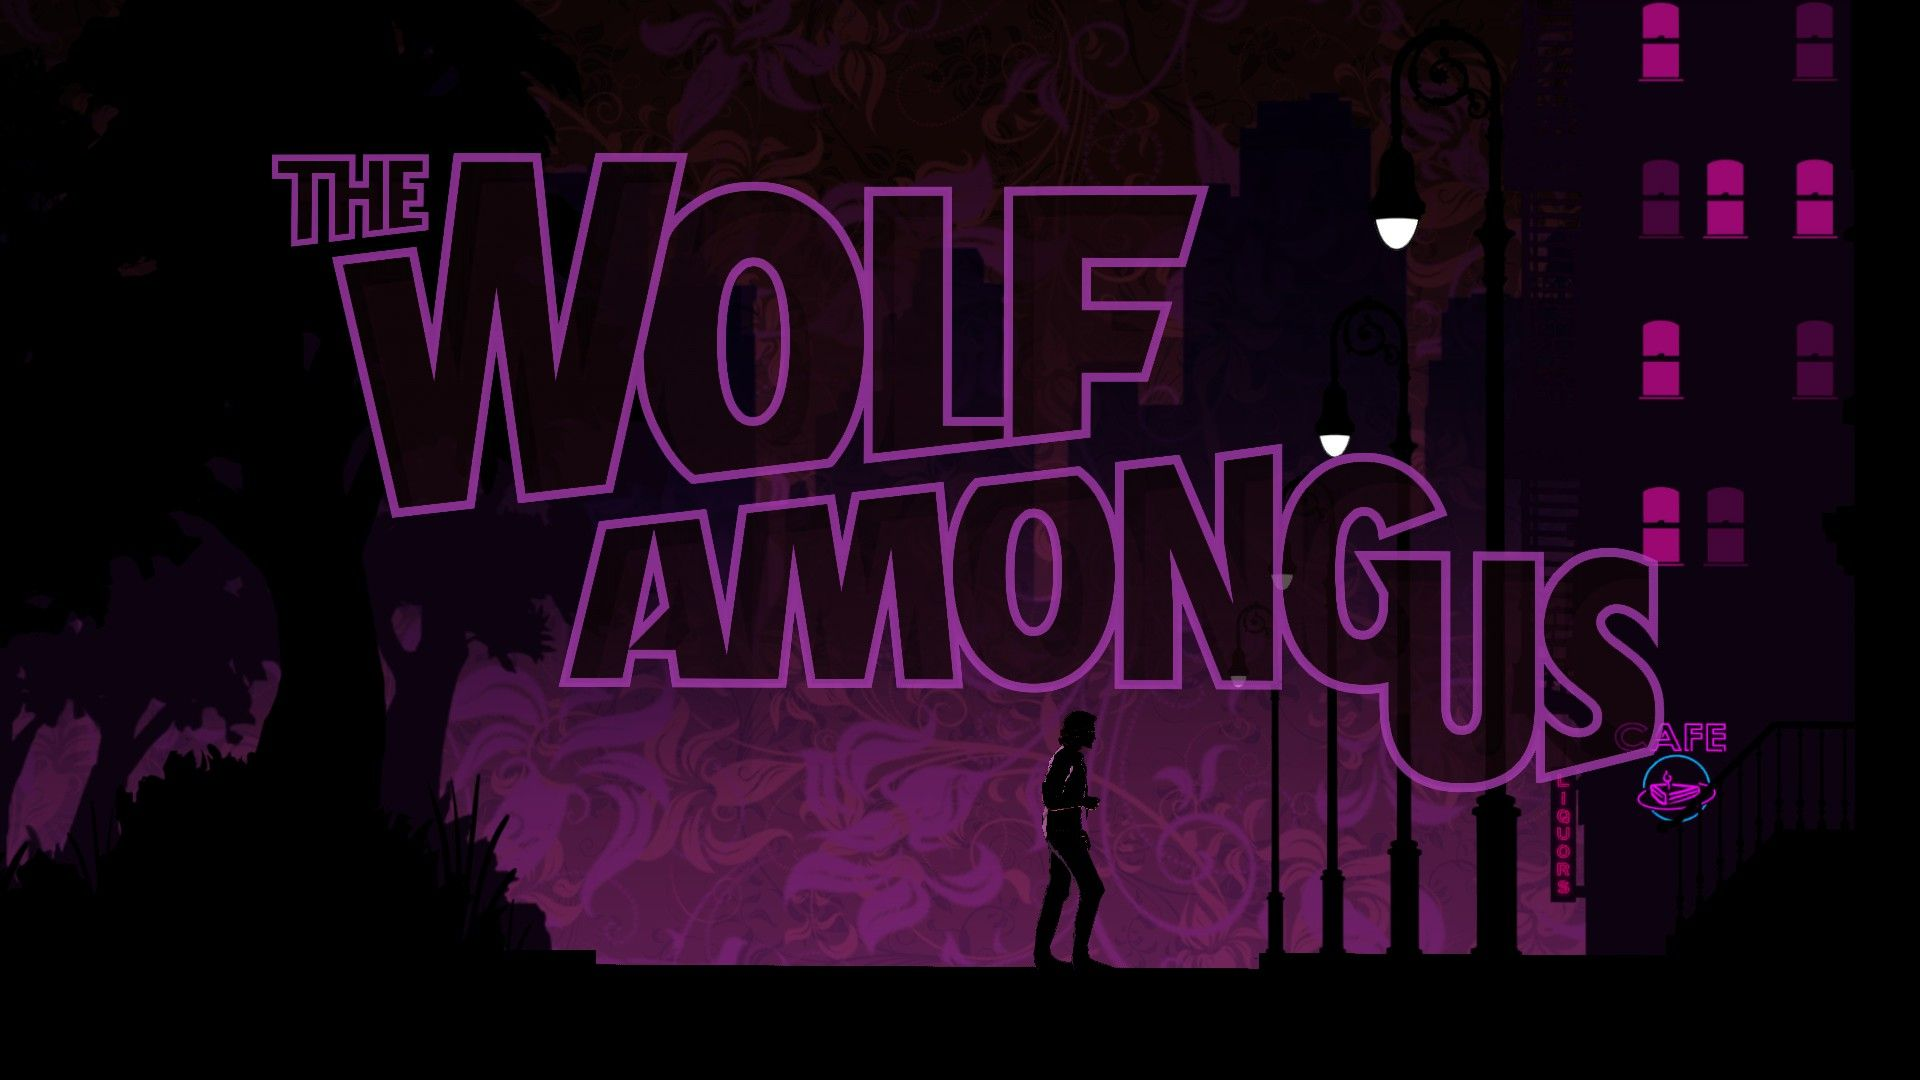 Top Collection Phone And Desktop Wallpaper Hd In 2020 The Wolf Among Us Top 10 Video Games Big Bad Wolf